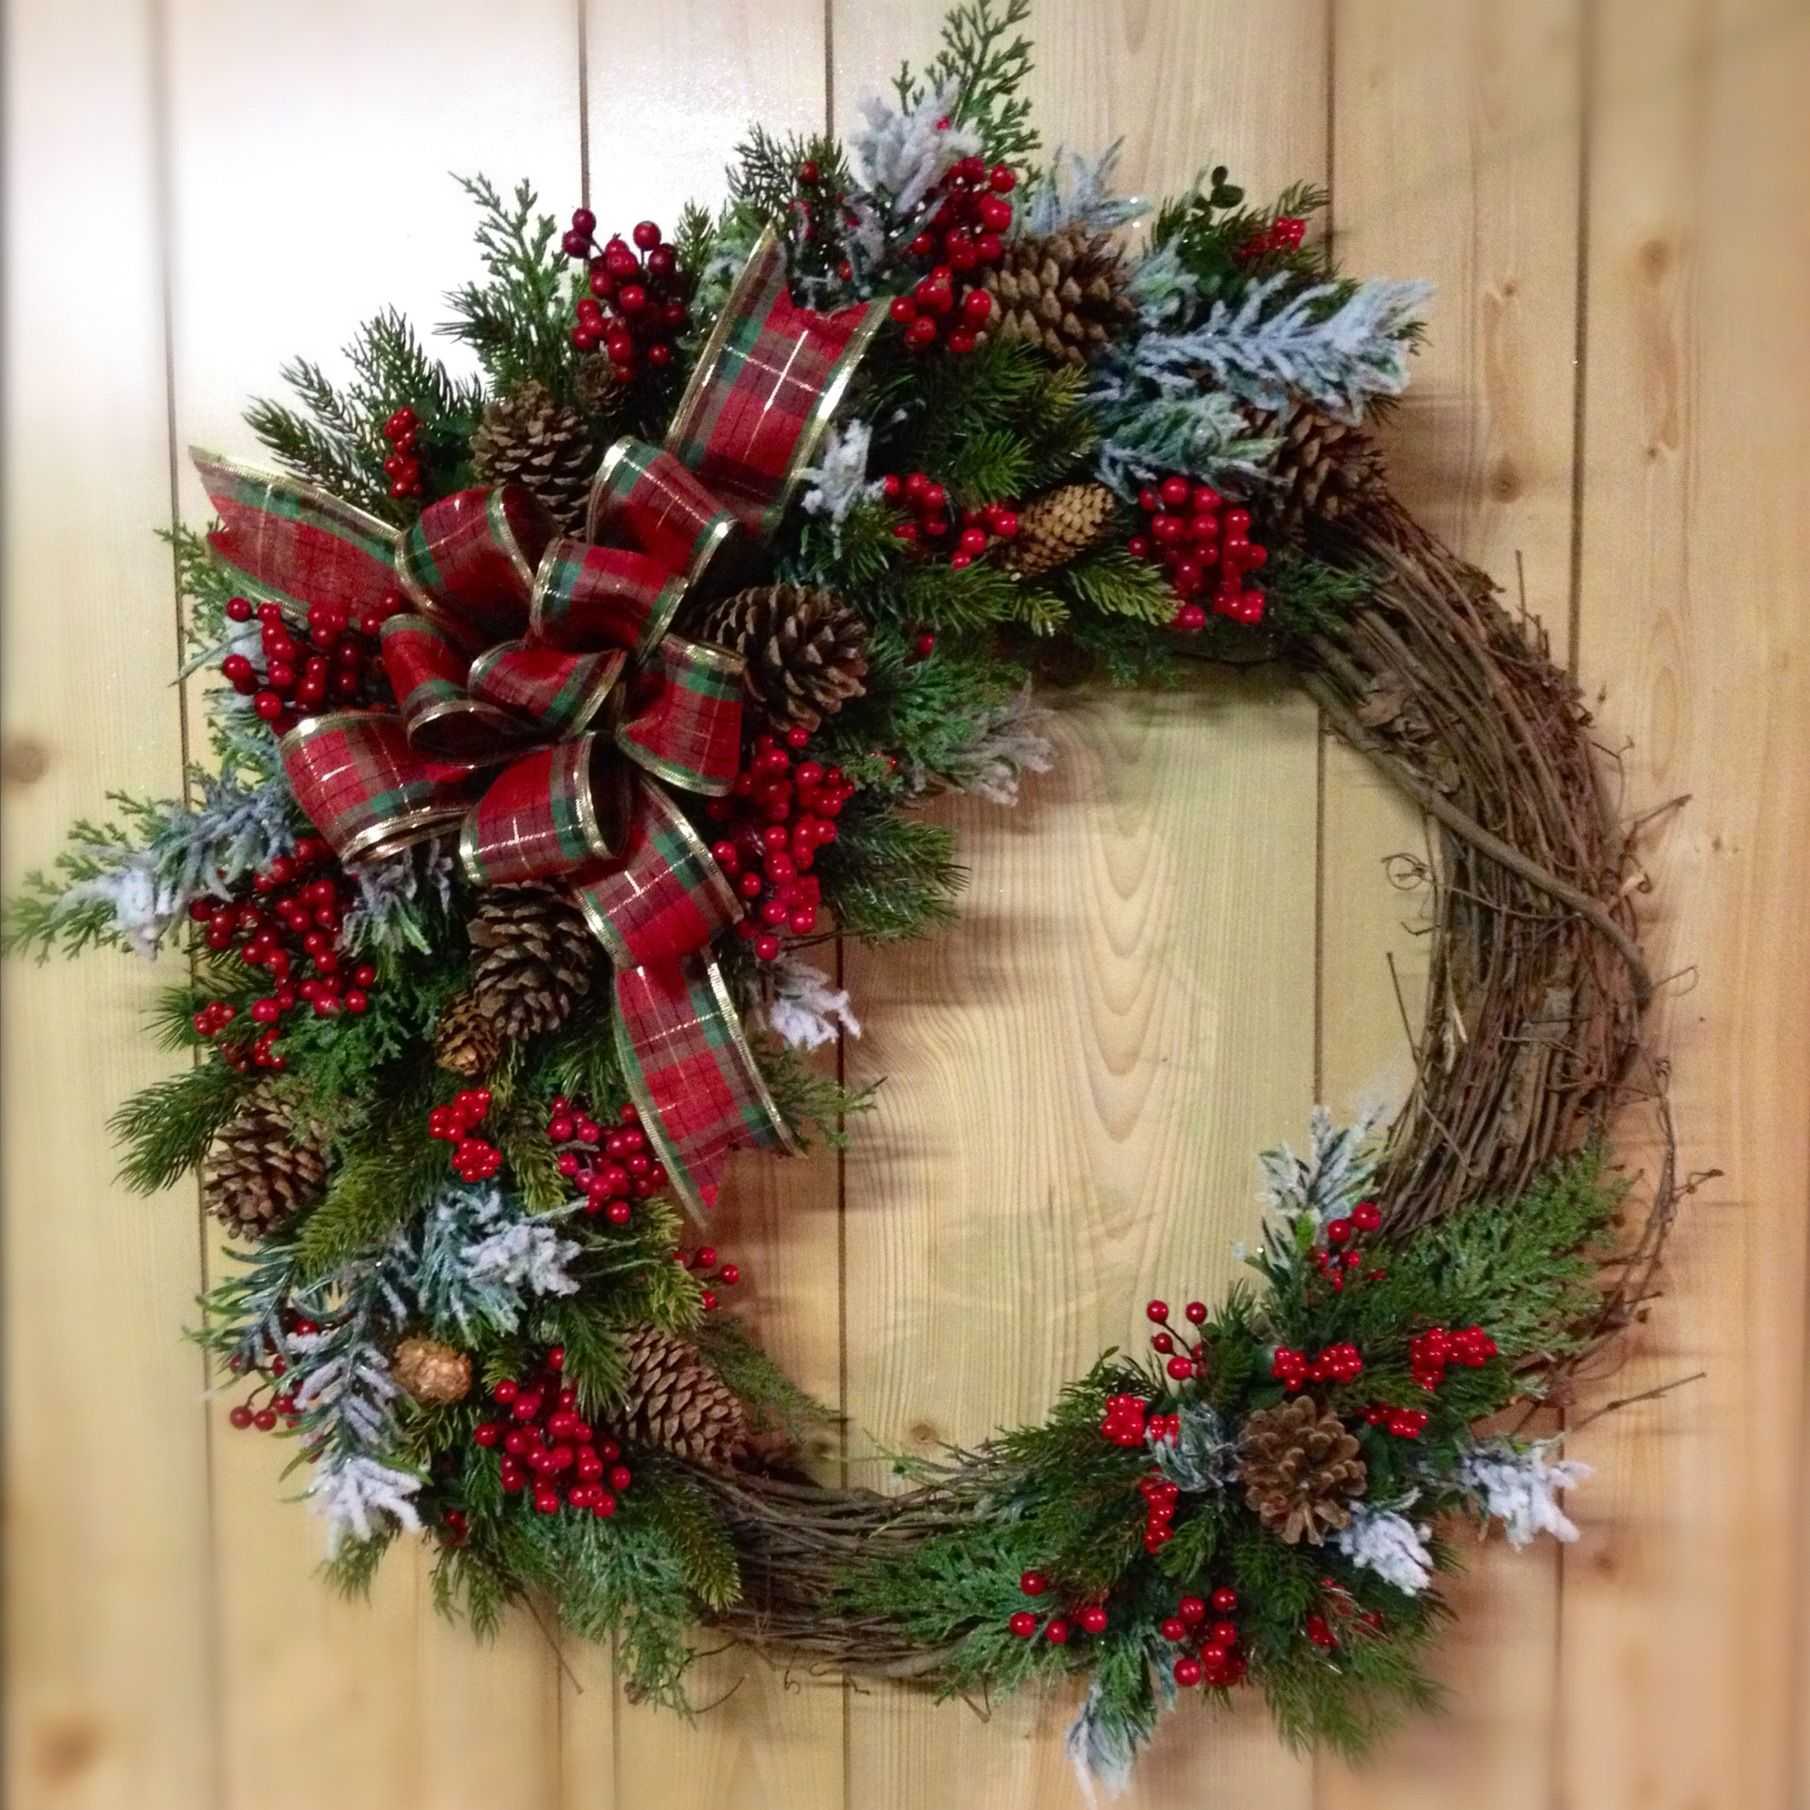 Rustic Christmas wreath Christmas wreaths, Holiday